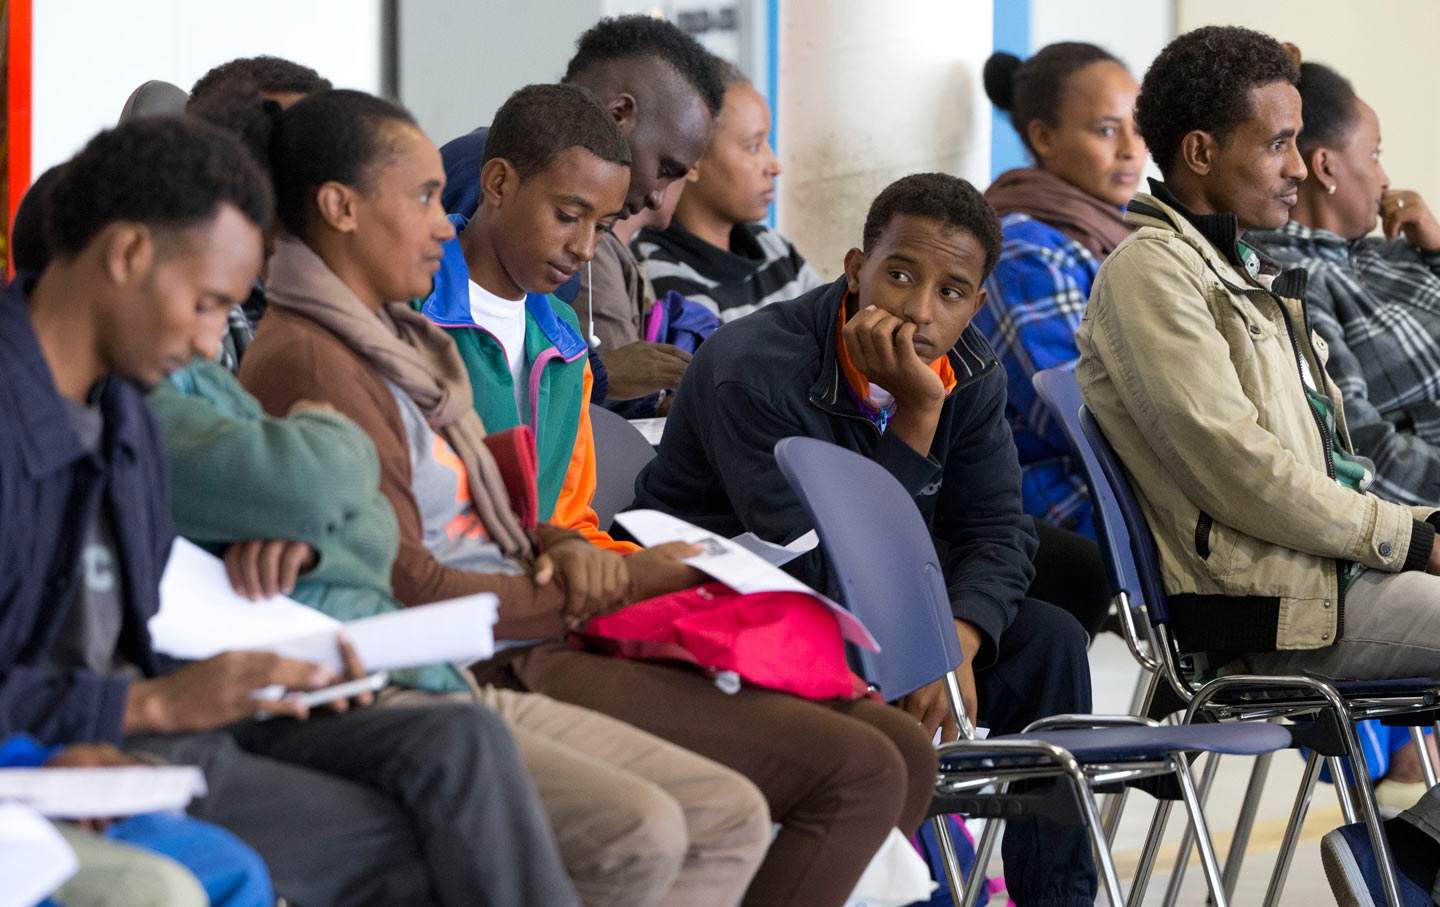 Eritrean: Europe Is Trying To Rid Itself Of The Eritrean Refugee